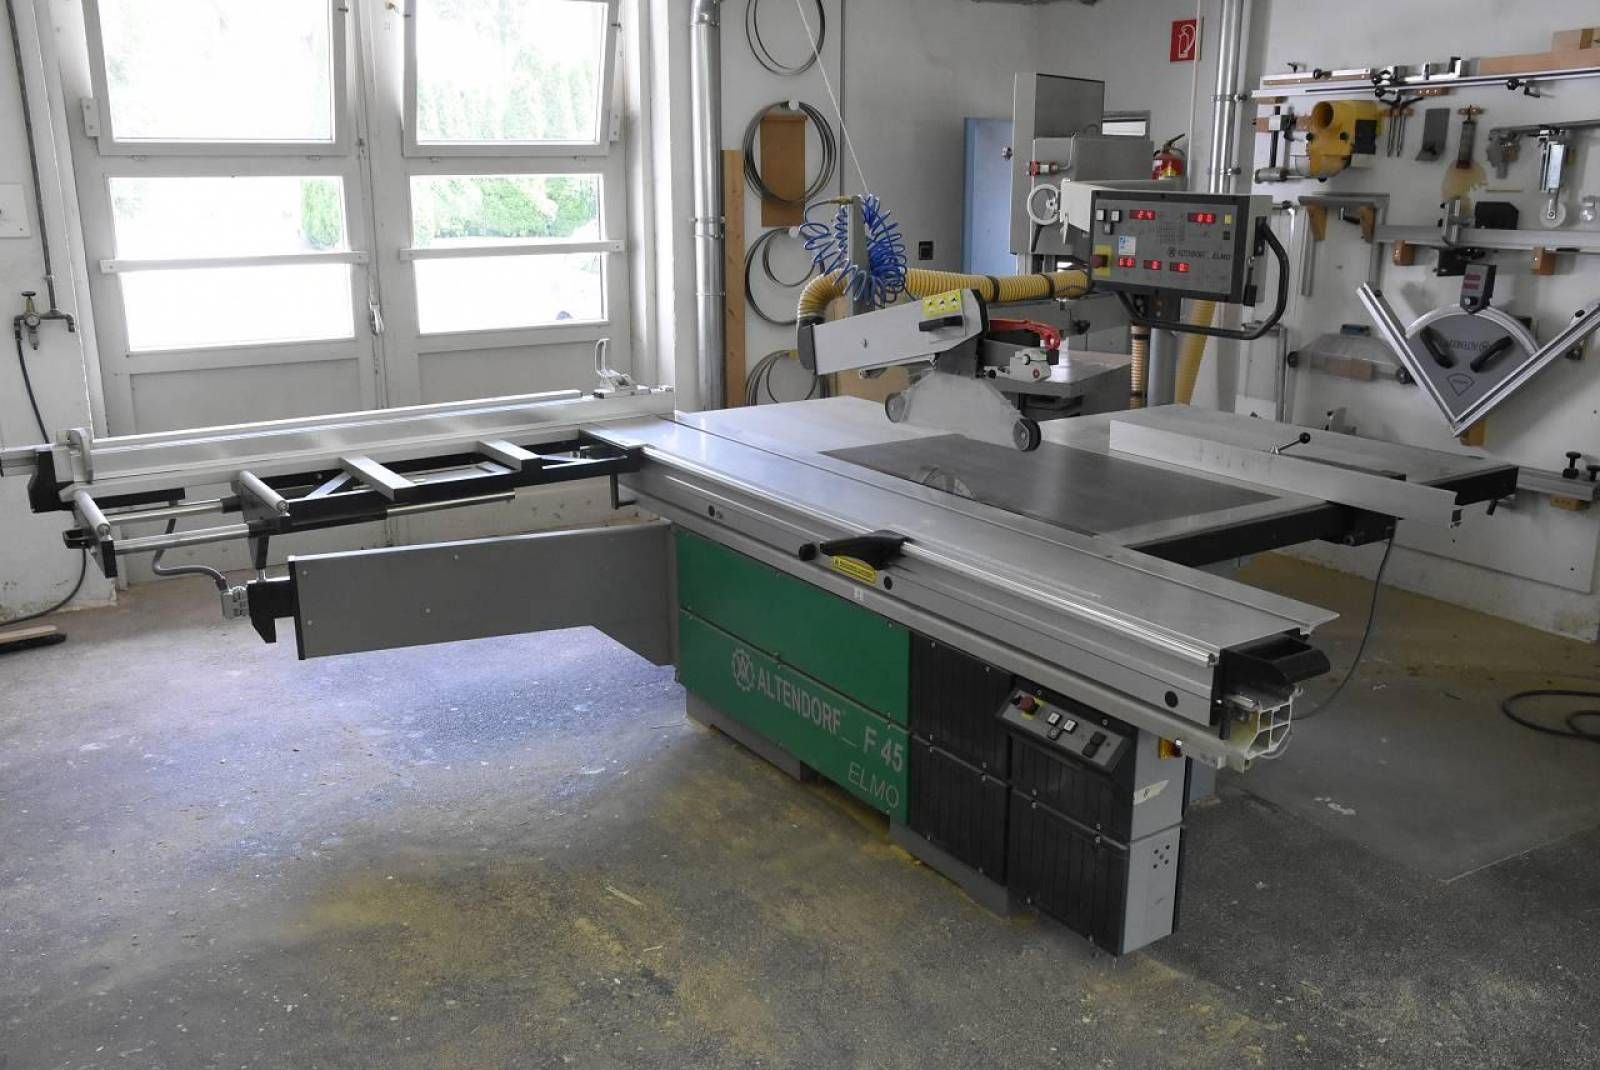 Auction Altendorf F45 Elmo Iv In 2020 Sliding Table Saw Sliding Table Elmo